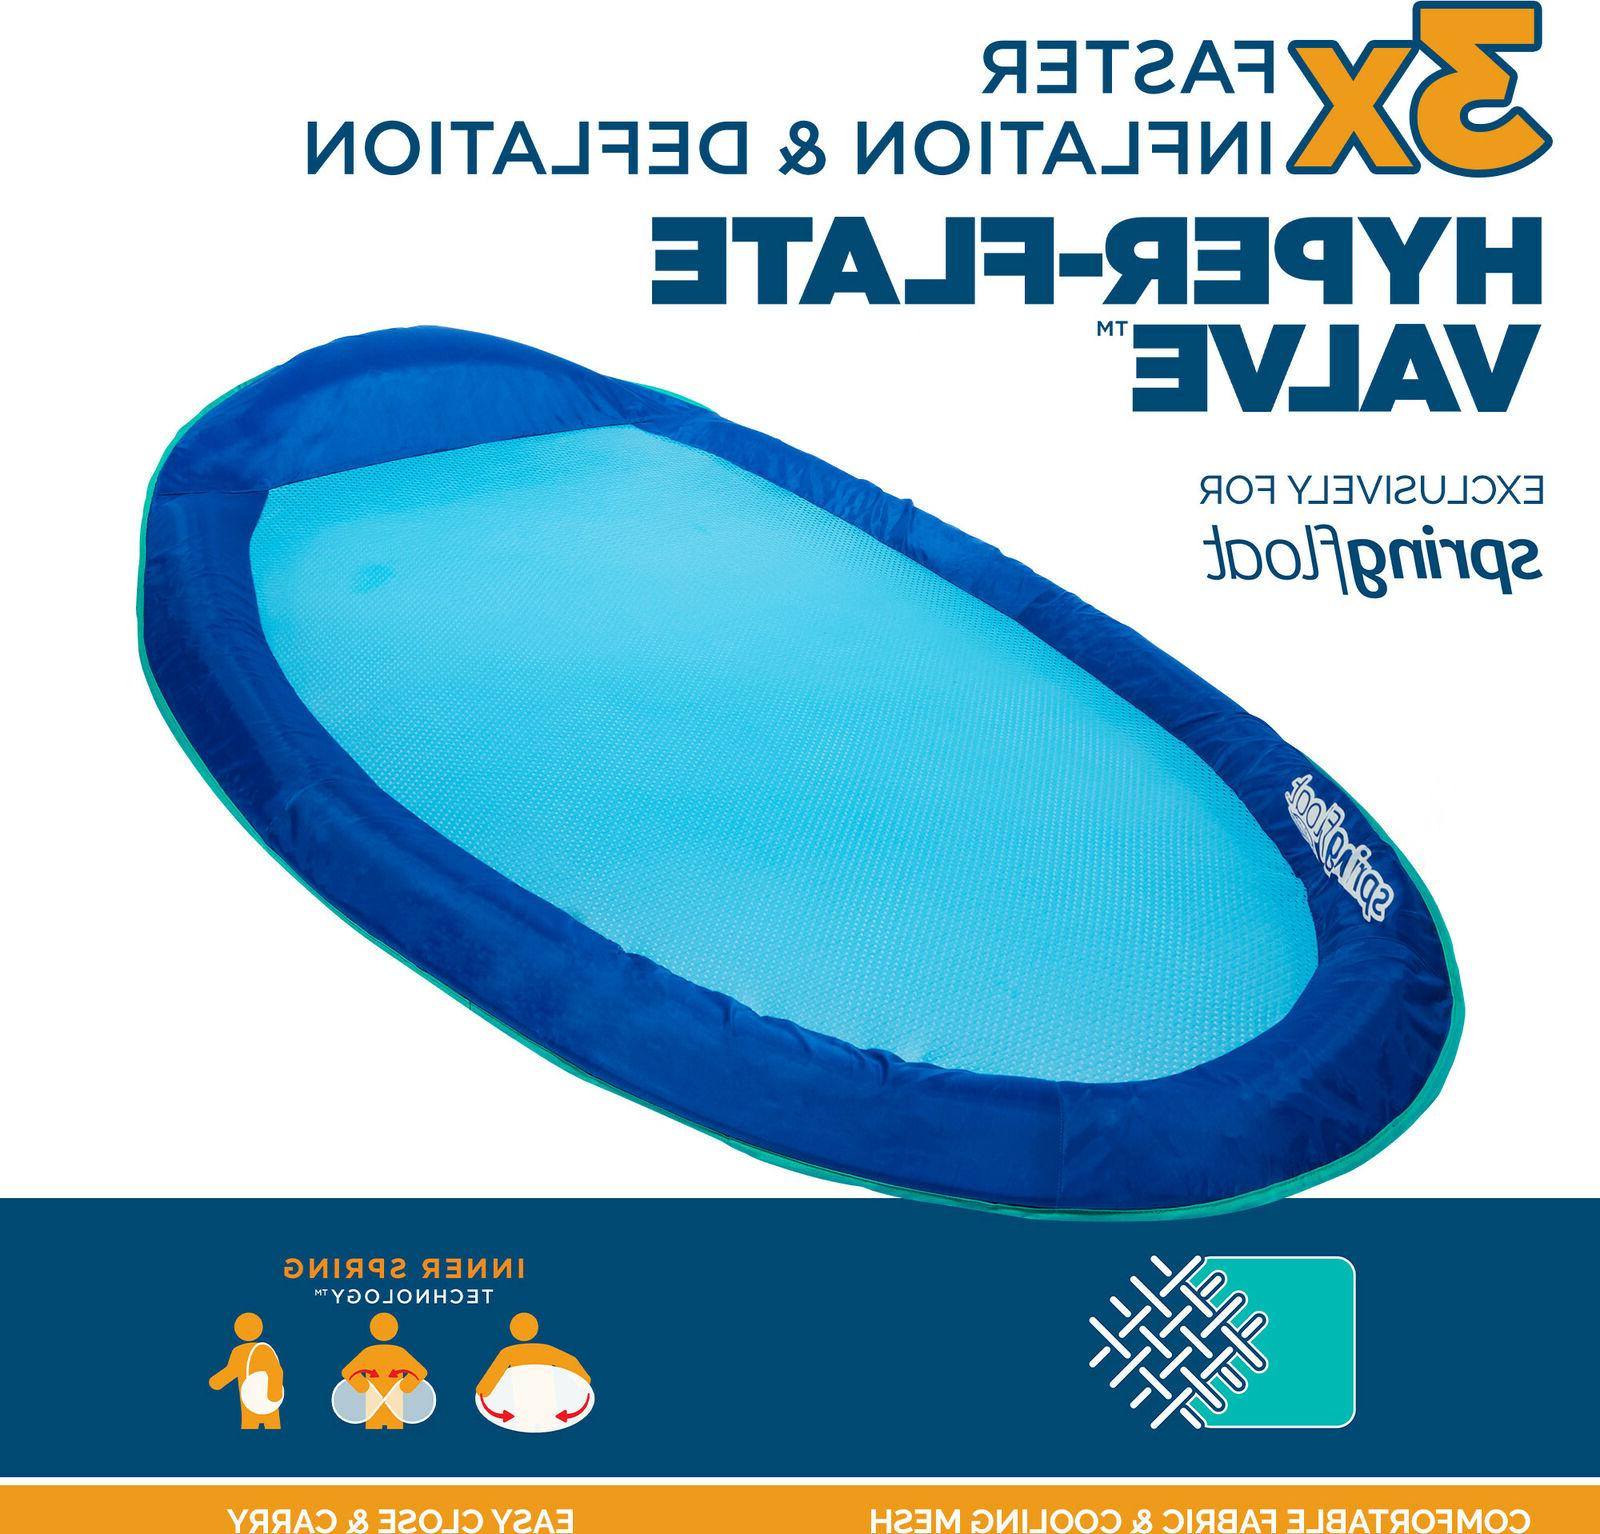 SwimWays Inflatable Pool Lounger with Valve